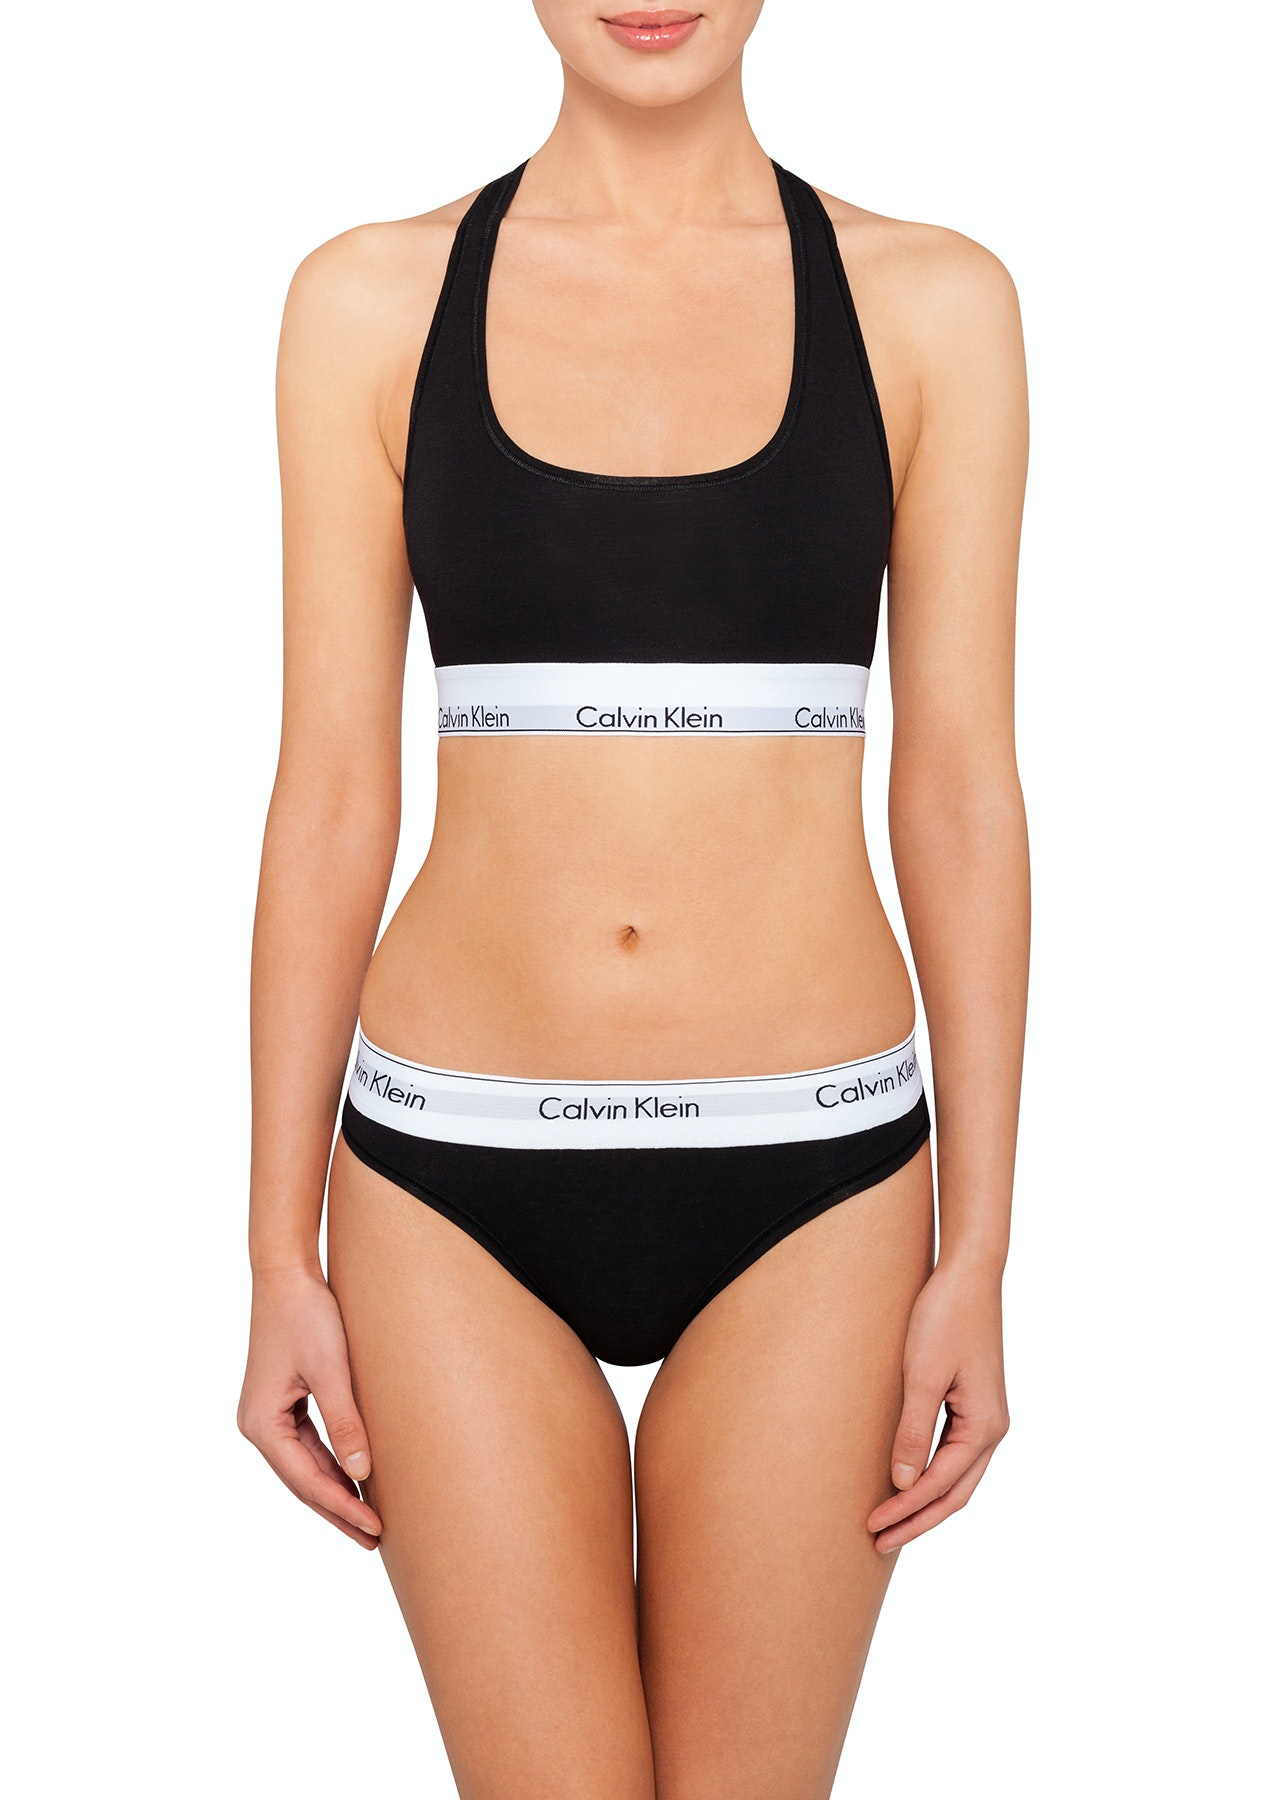 87618d93710 Calvin Klein - Modern Cotton Bralette & Bikini Set - Black - $59.95 CK Sets  & More - Onceit